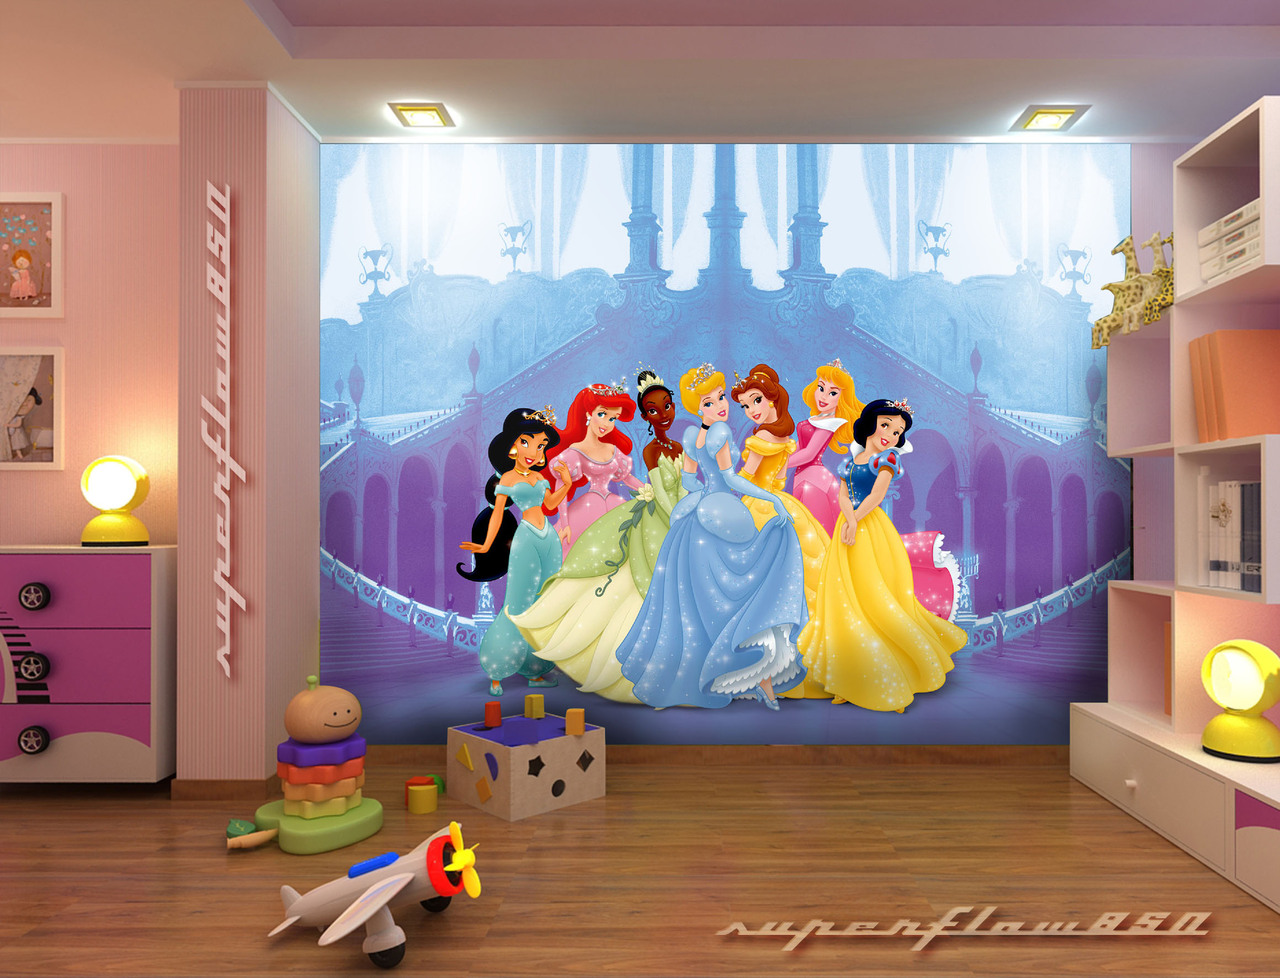 Childrens disney wallpaper murals just for sharing for Child mural wallpaper